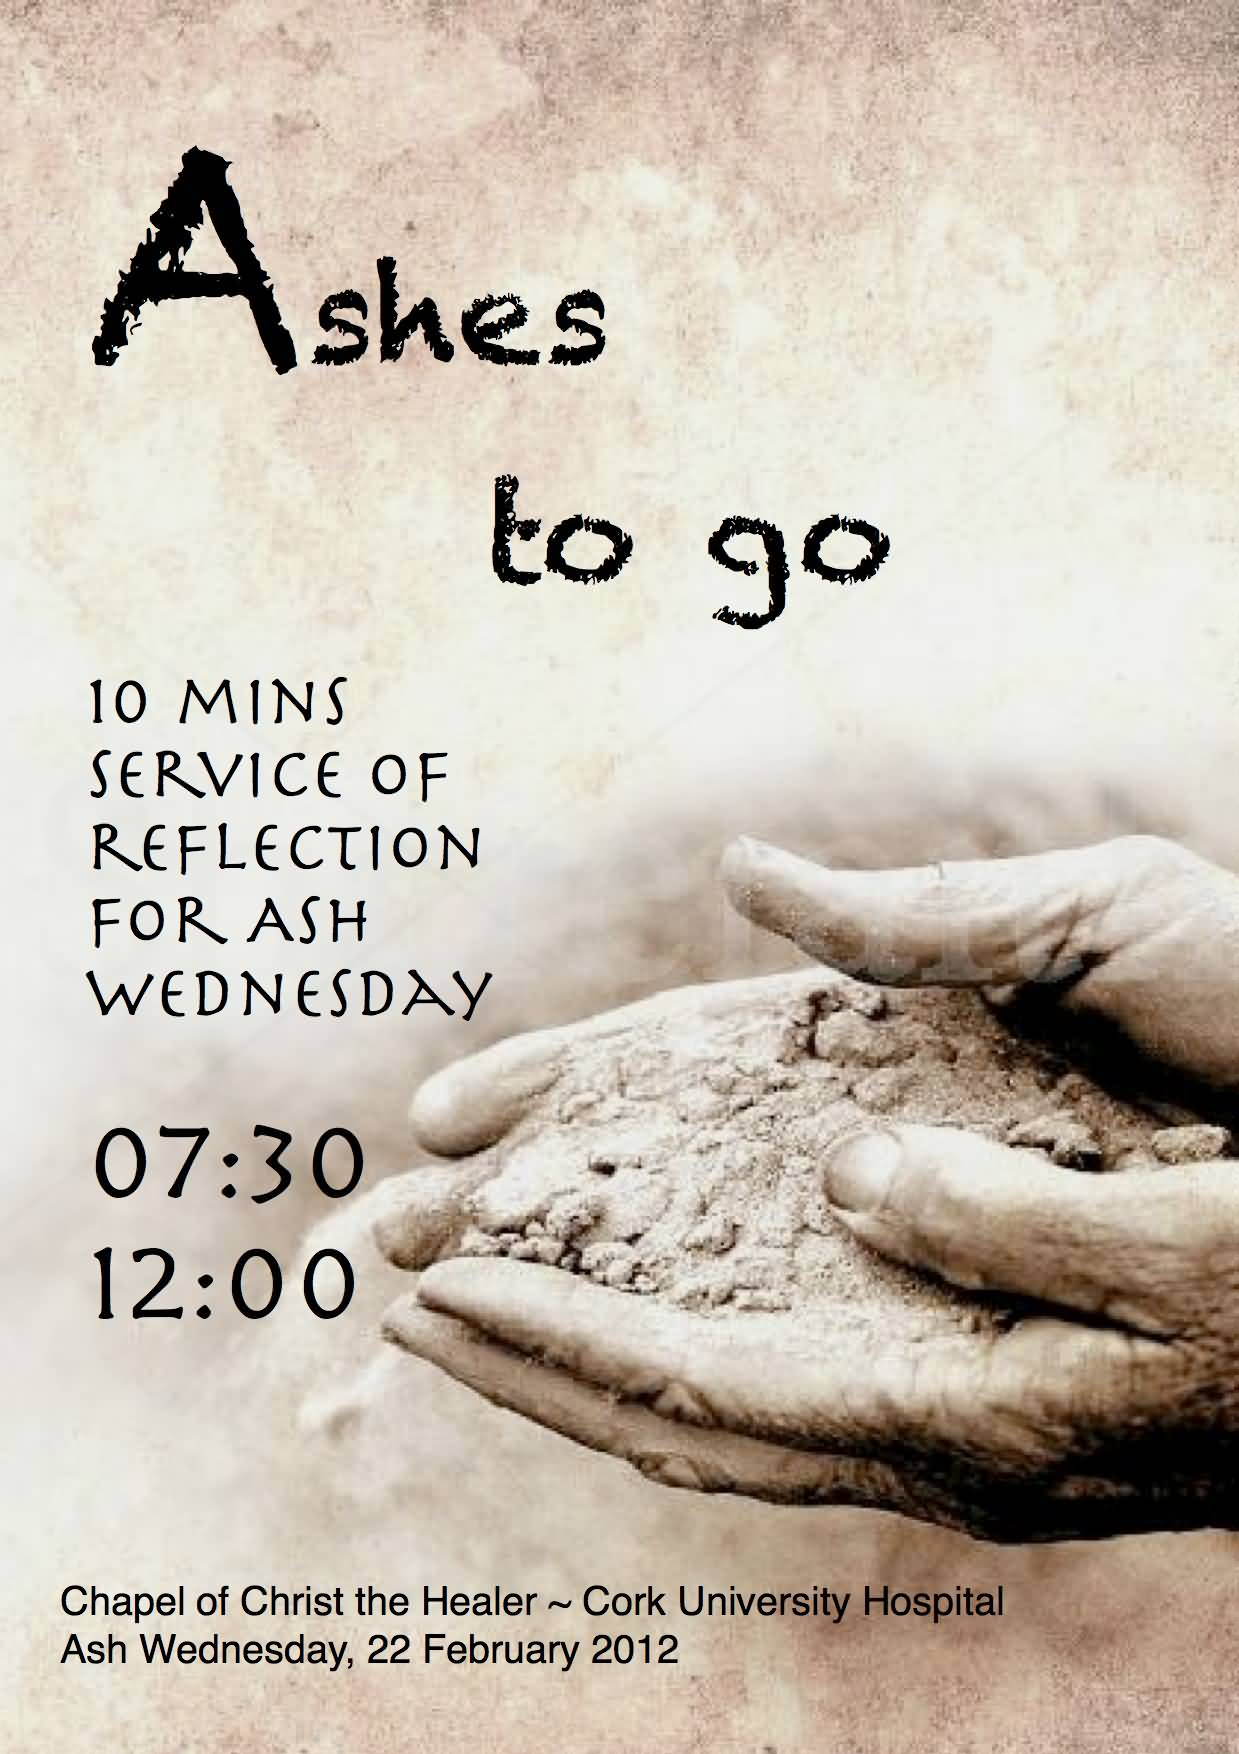 58 Ash Wednesday Wish Pictures And Photos